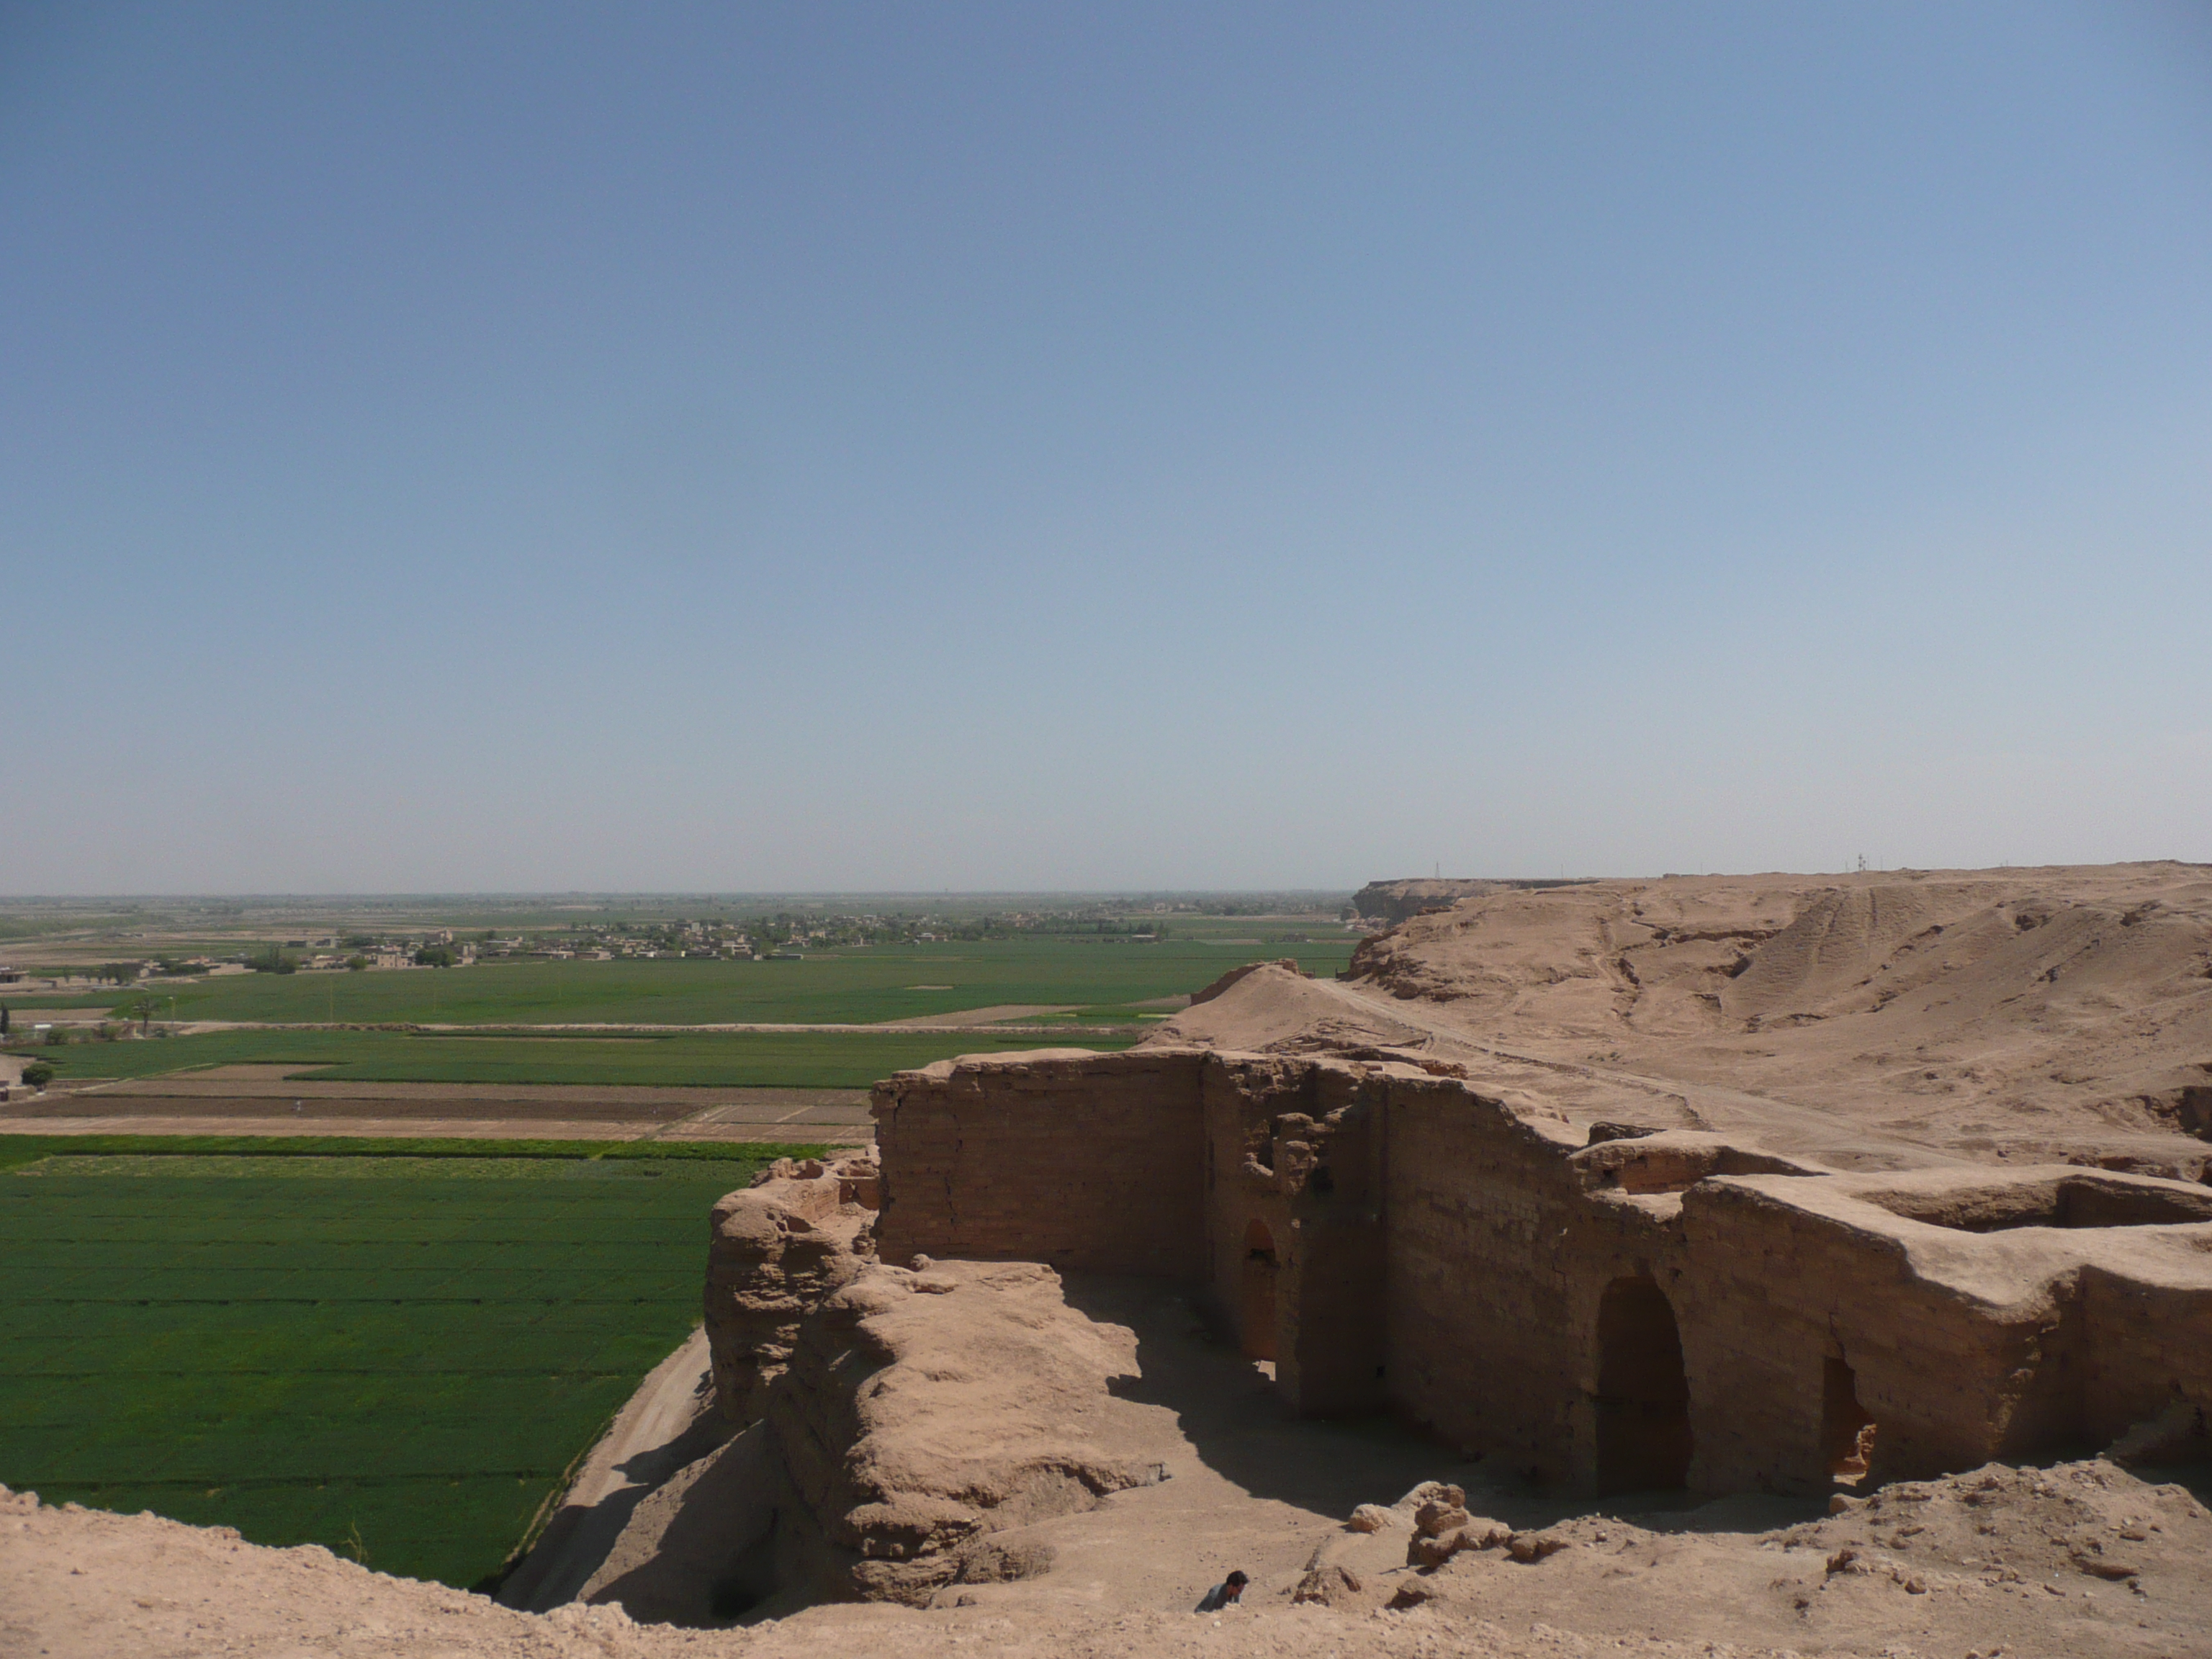 Citadel in Deir Europos by Ali Khan